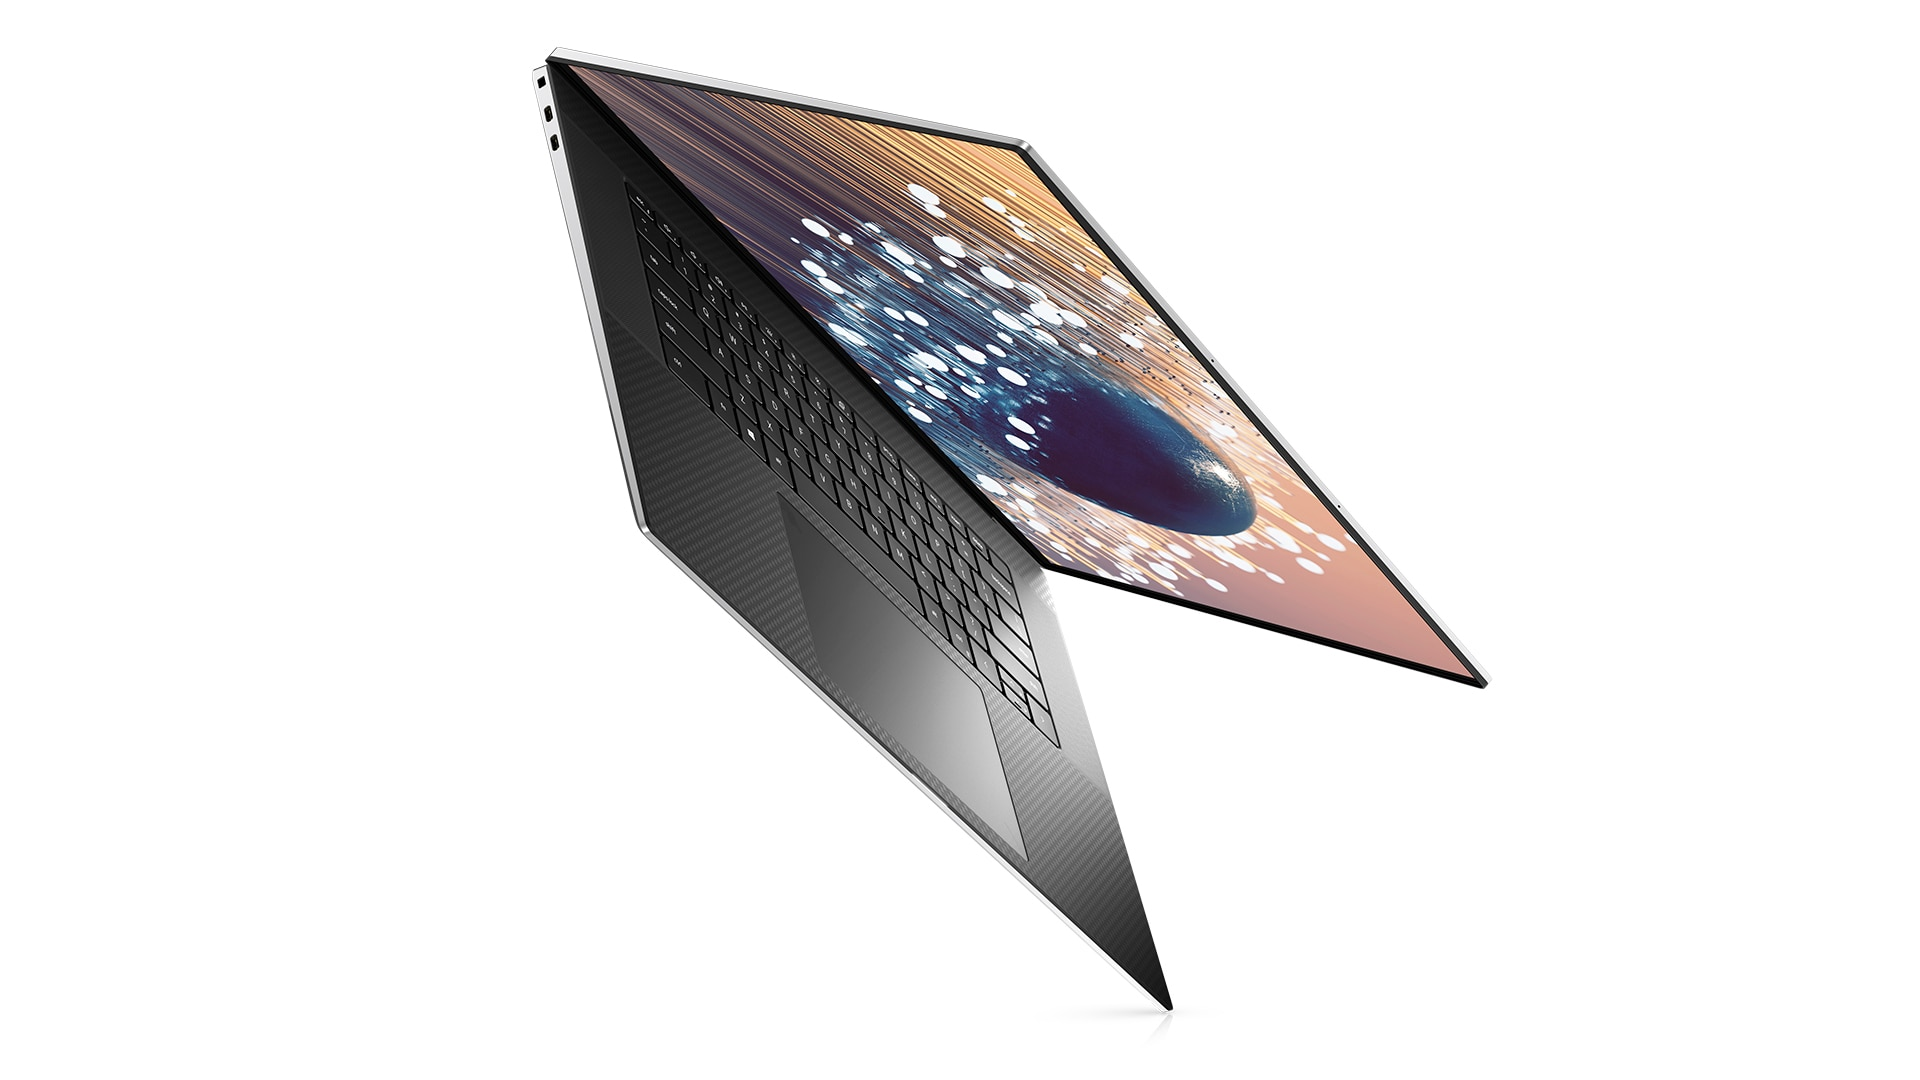 "XPS 17"" Laptop (2020) Product Overview"